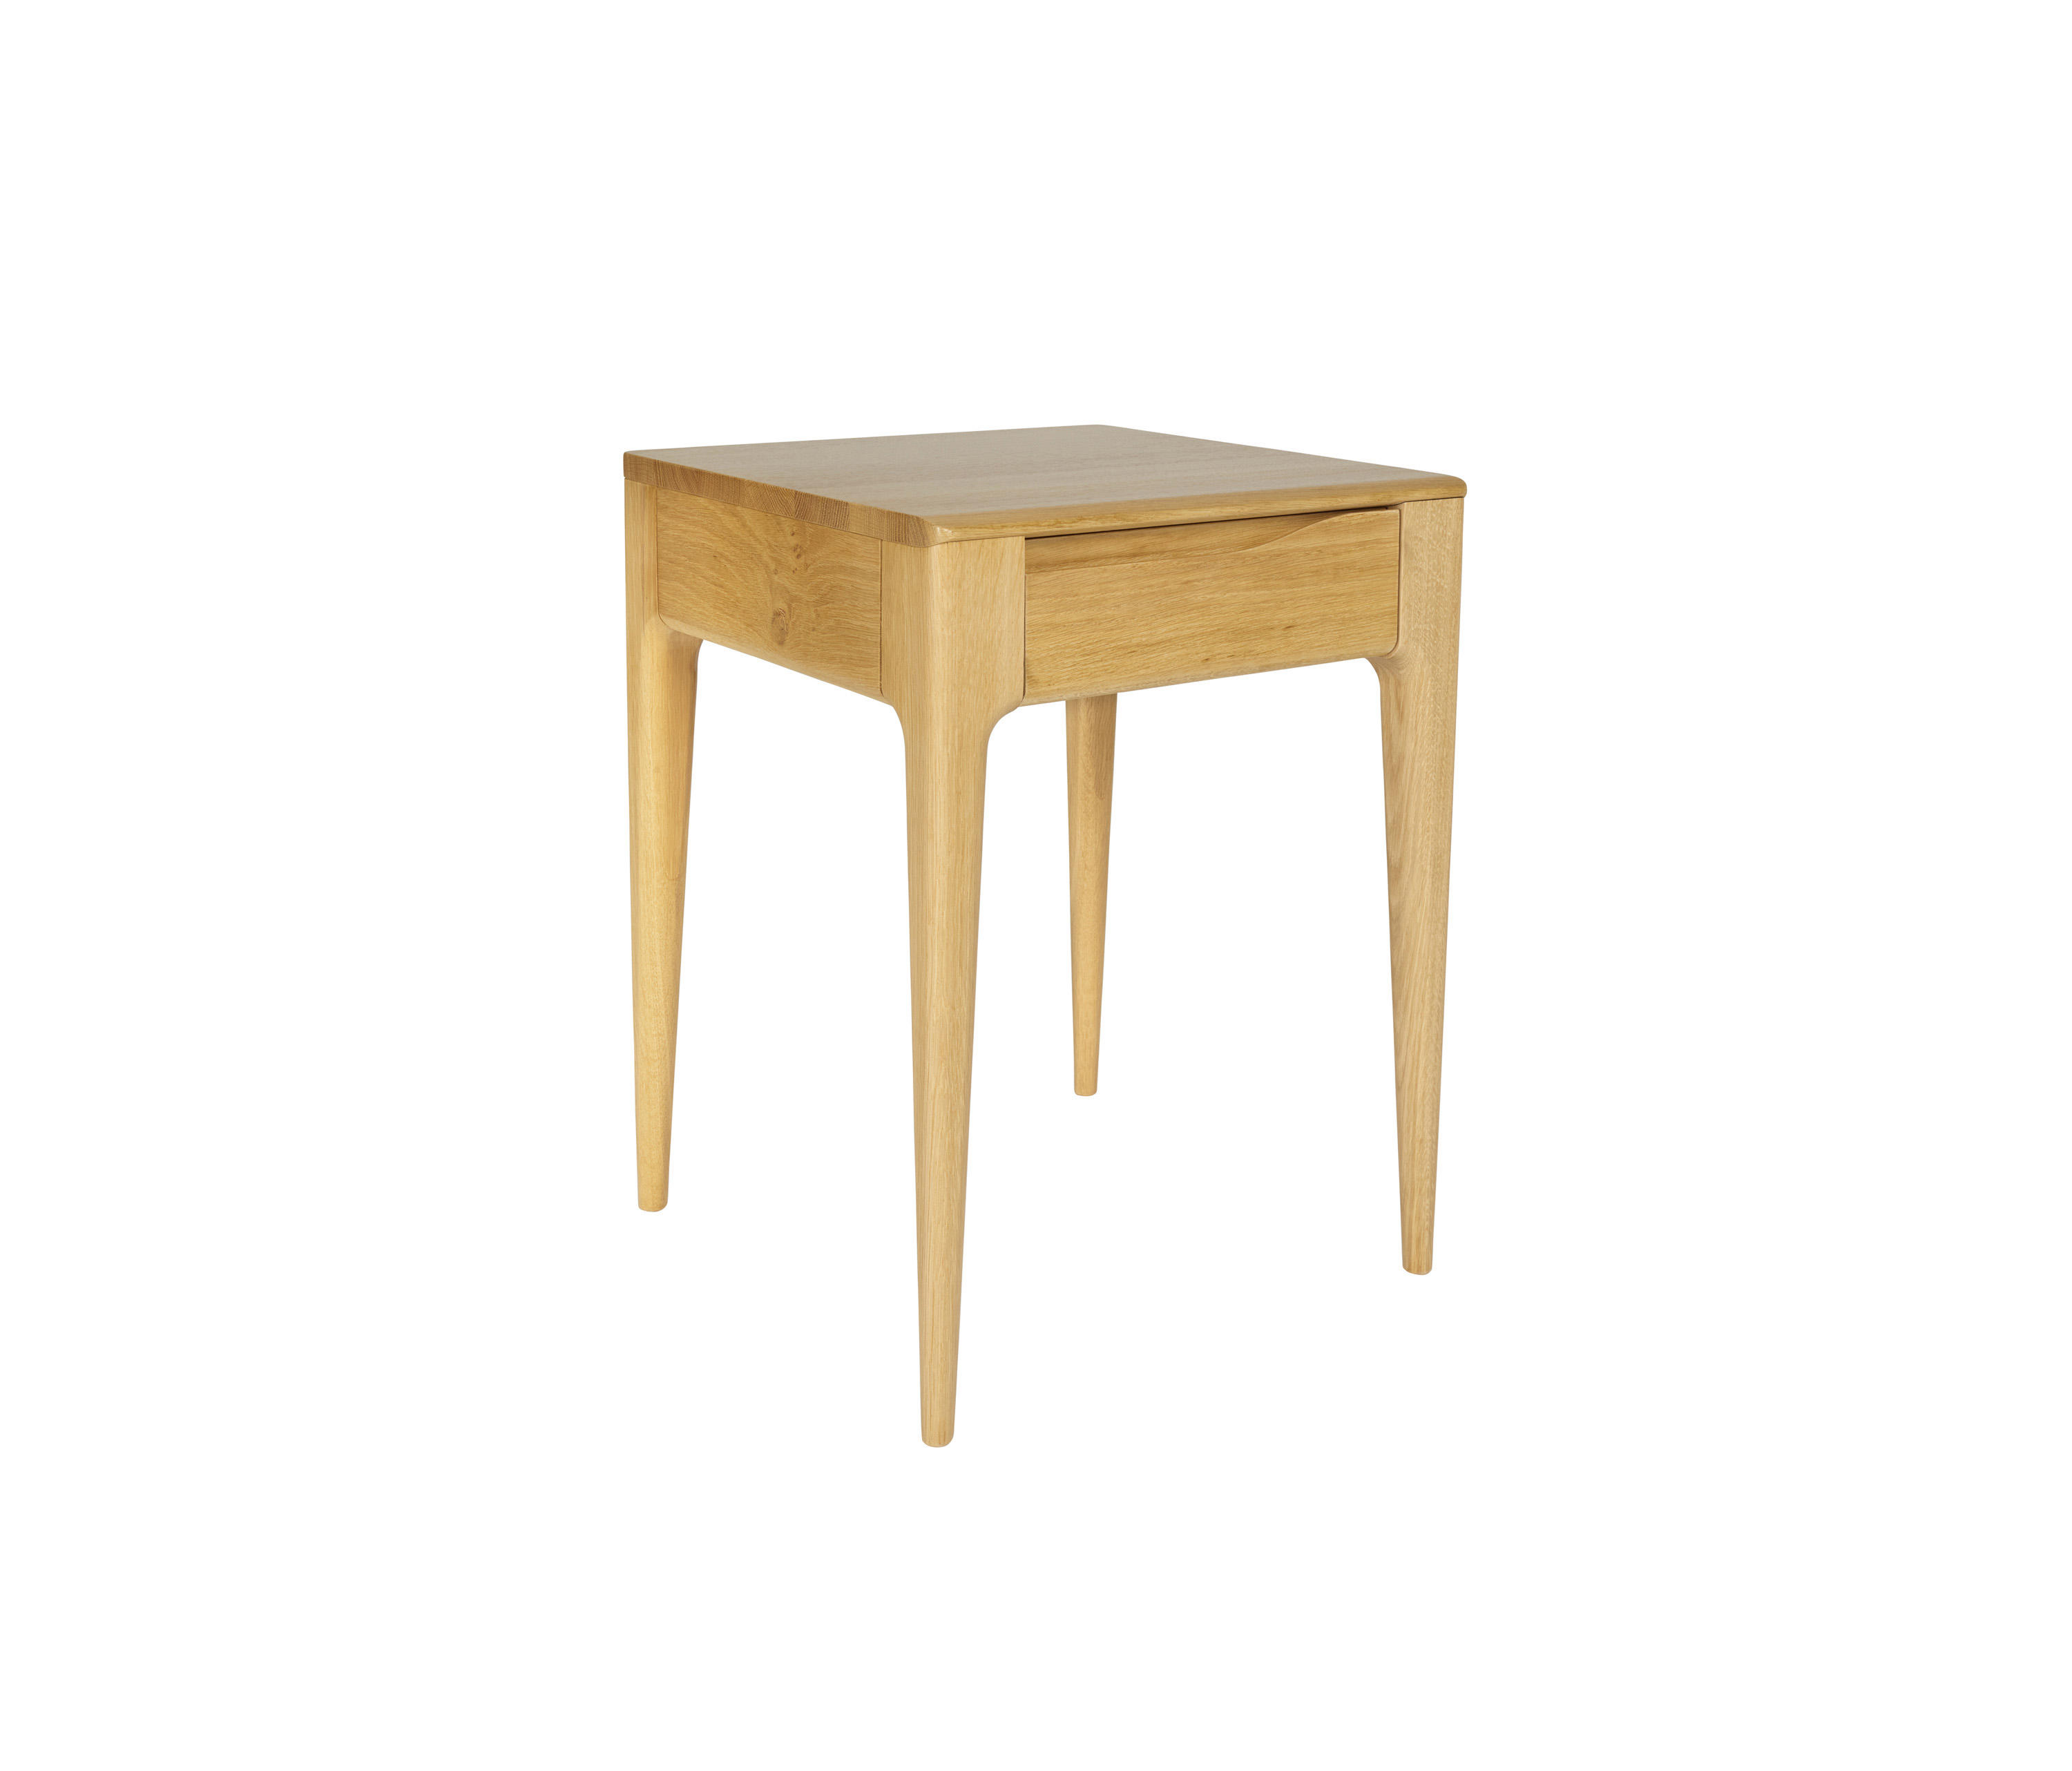 Romana lamp table side tables from ercol architonic romana lamp table by ercol side tables aloadofball Images